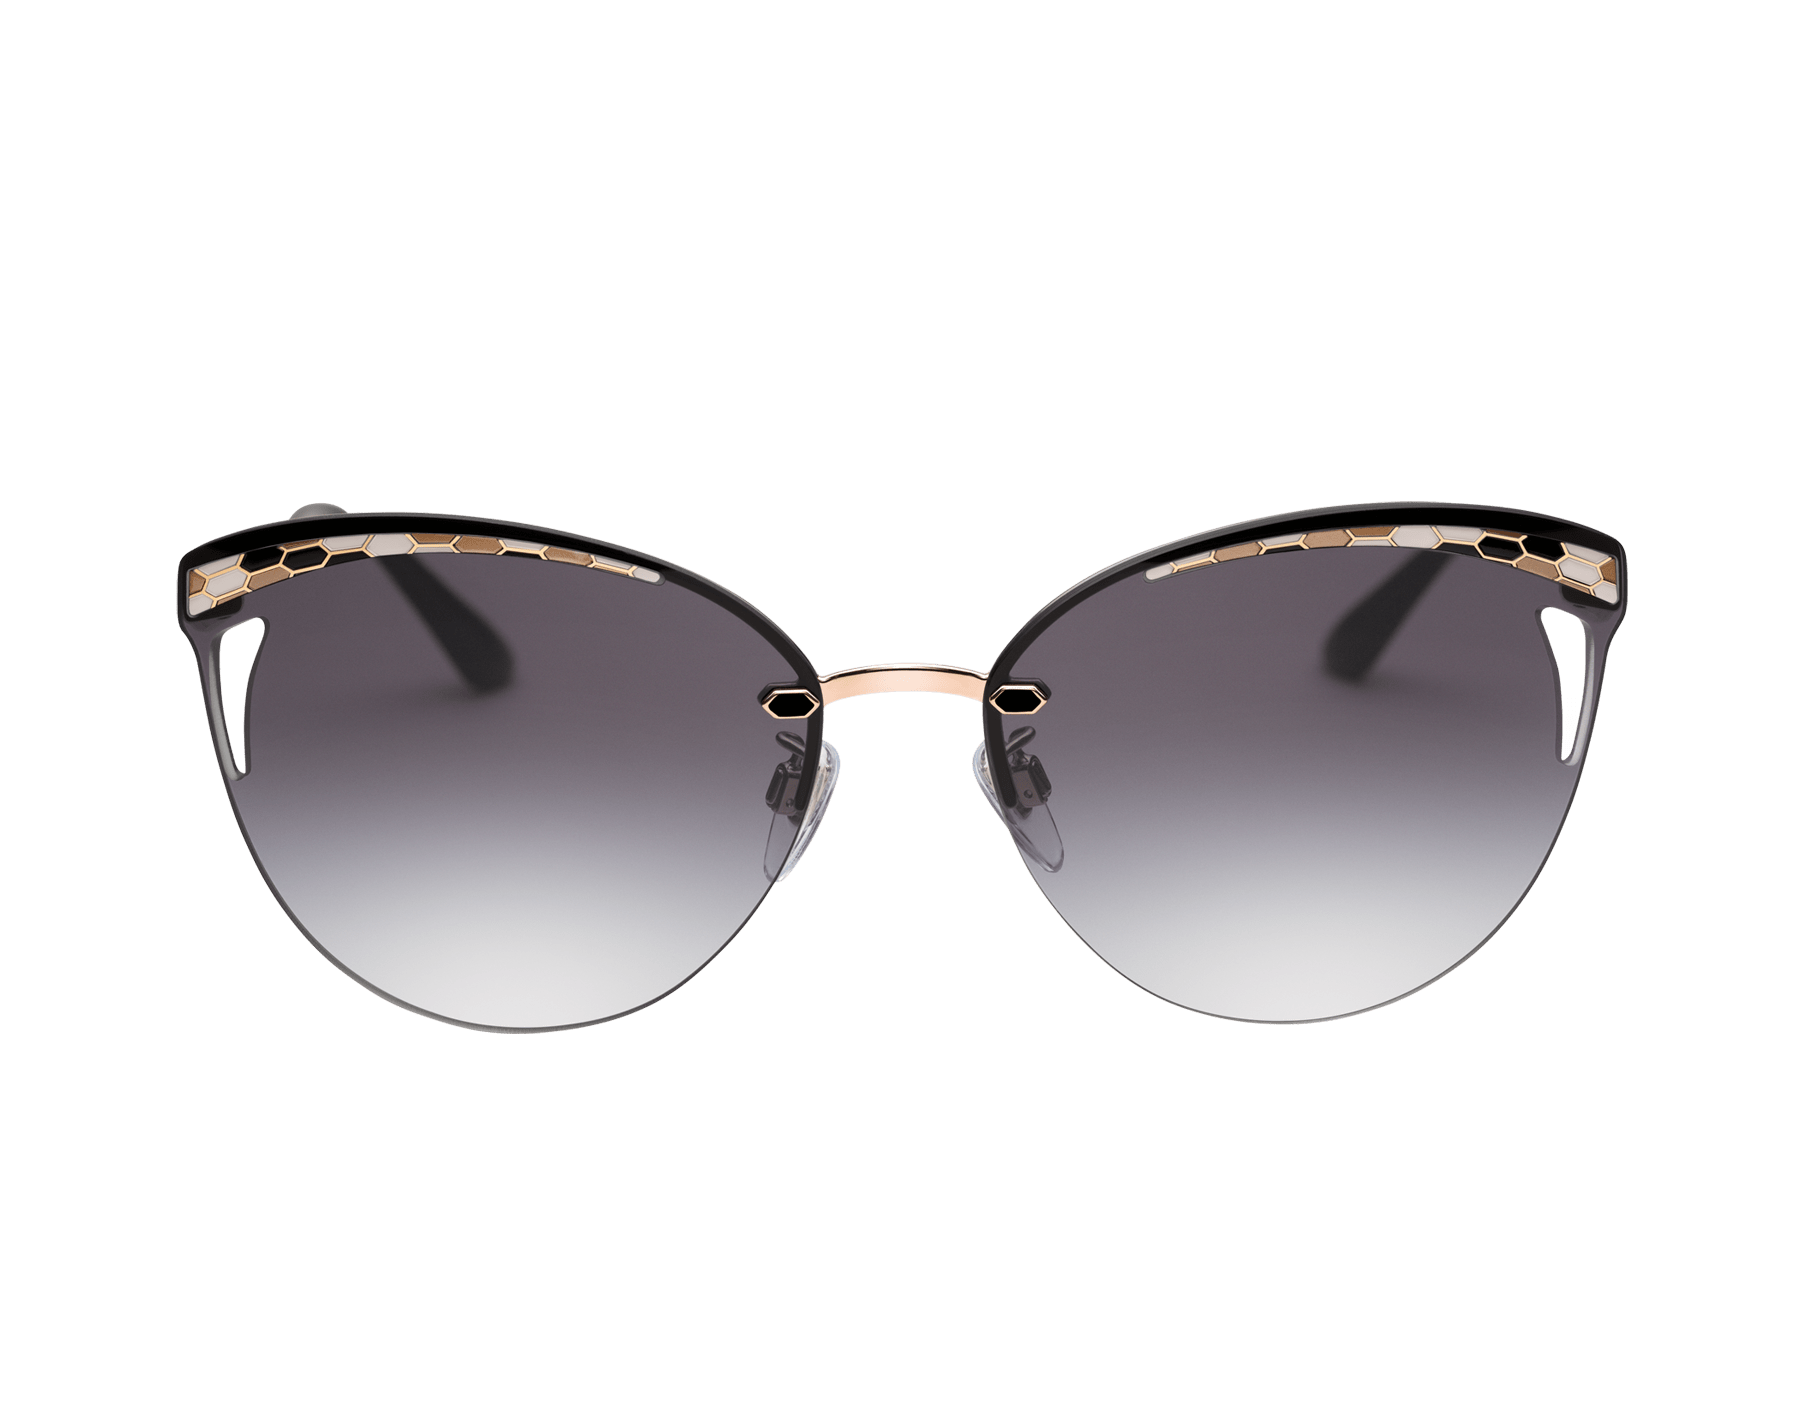 Bvlgari Serpentine Rainbow Scales semi-rimless cat-eye metal sunglasses 903639 image 2